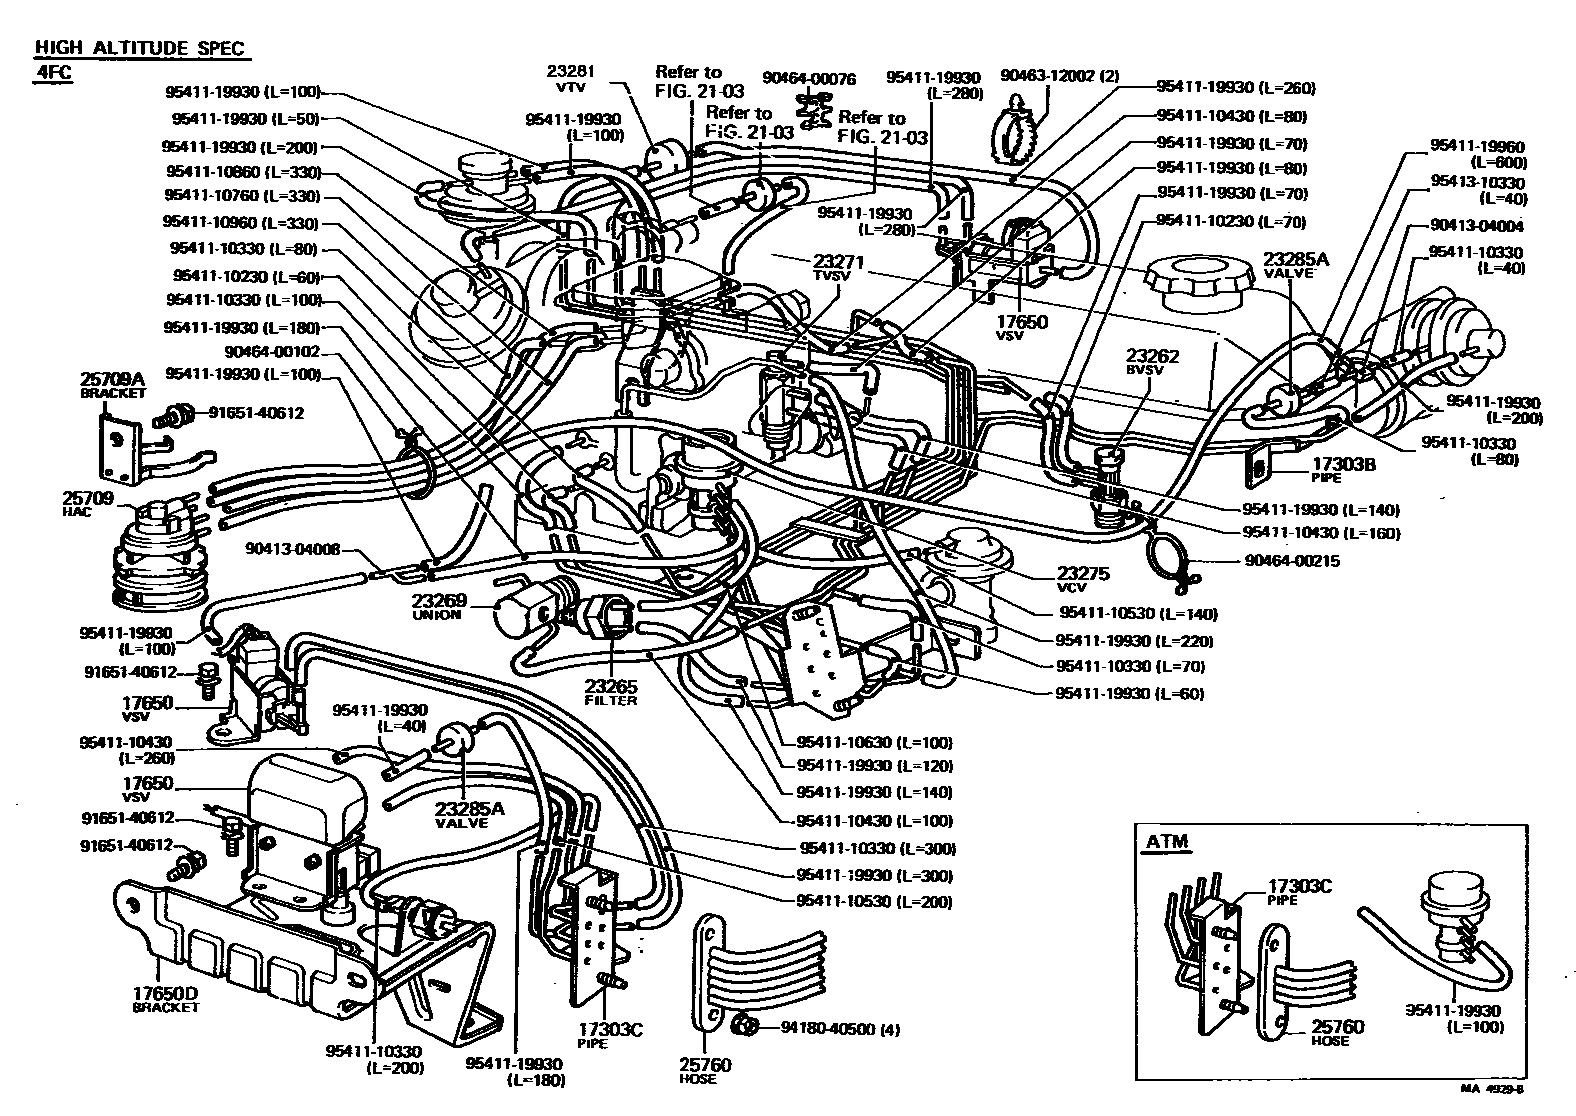 1997 Tacoma 3 4 Liter Engine Diagram - exclusive wiring ... on